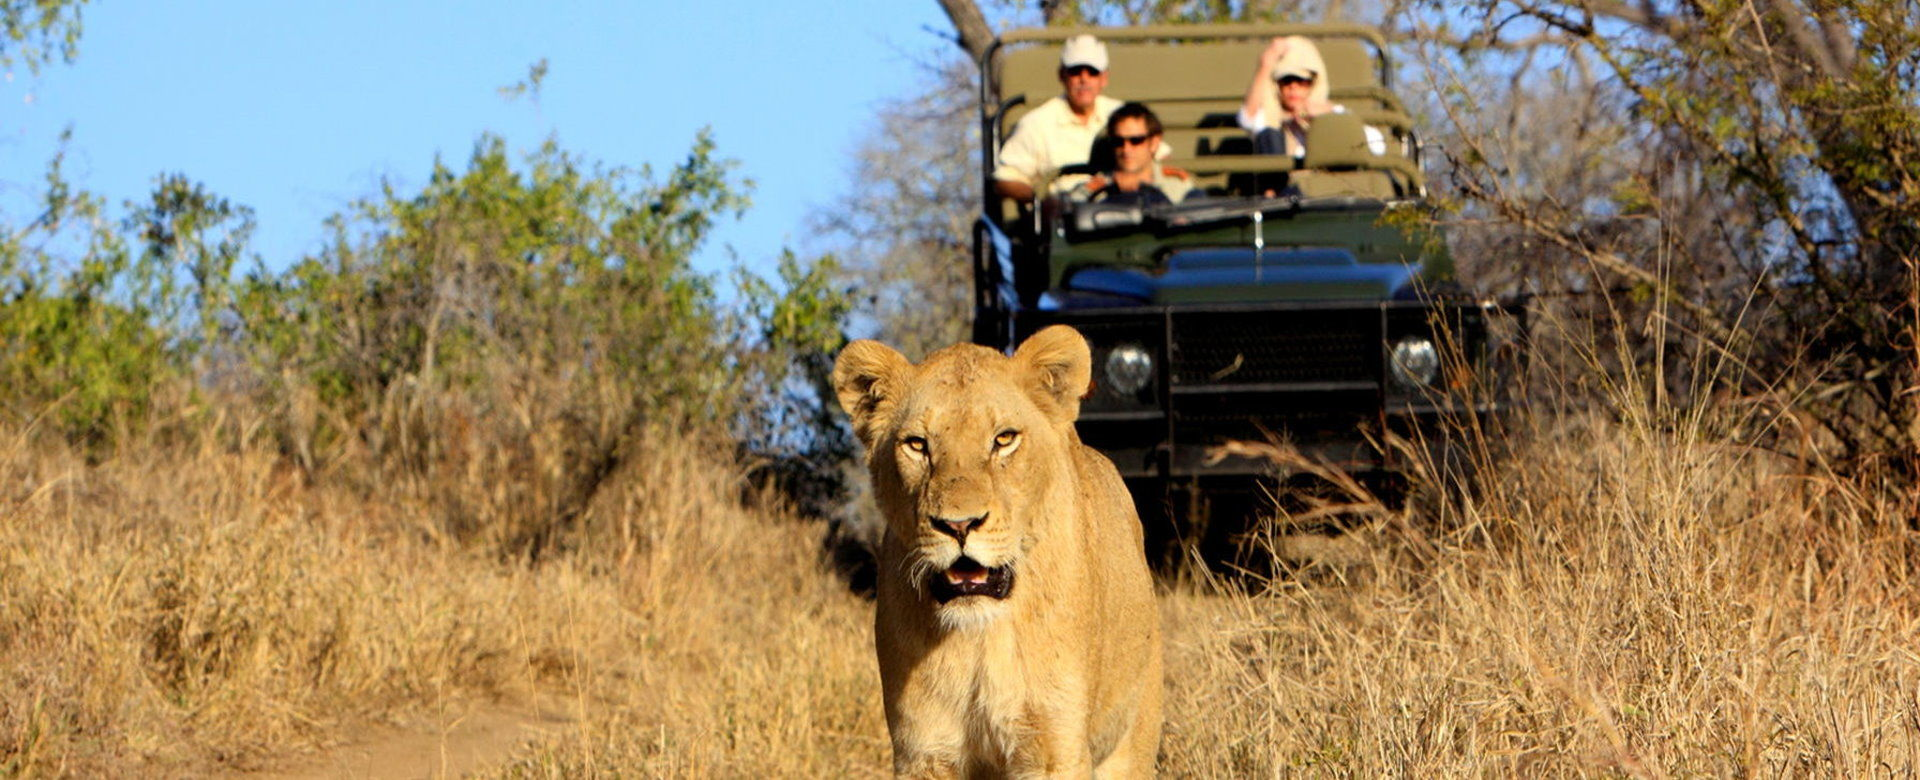 Ultimate Africa - Lion Sighting